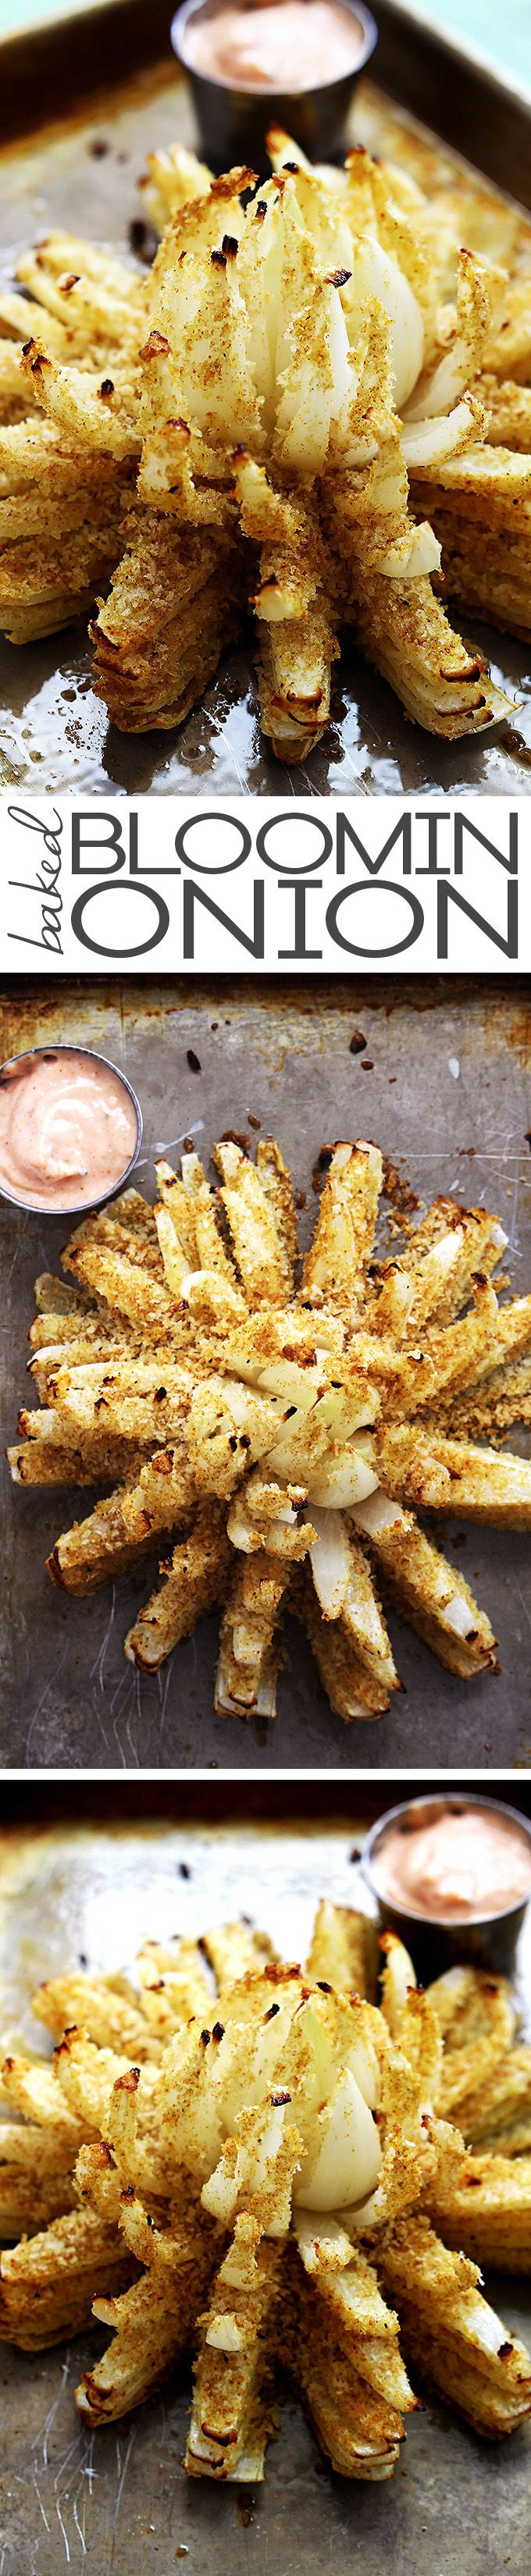 crispy and spicy baked blooming onion served with a creamy greek yogurt dipping sauce #gameday #healthy #snackattack